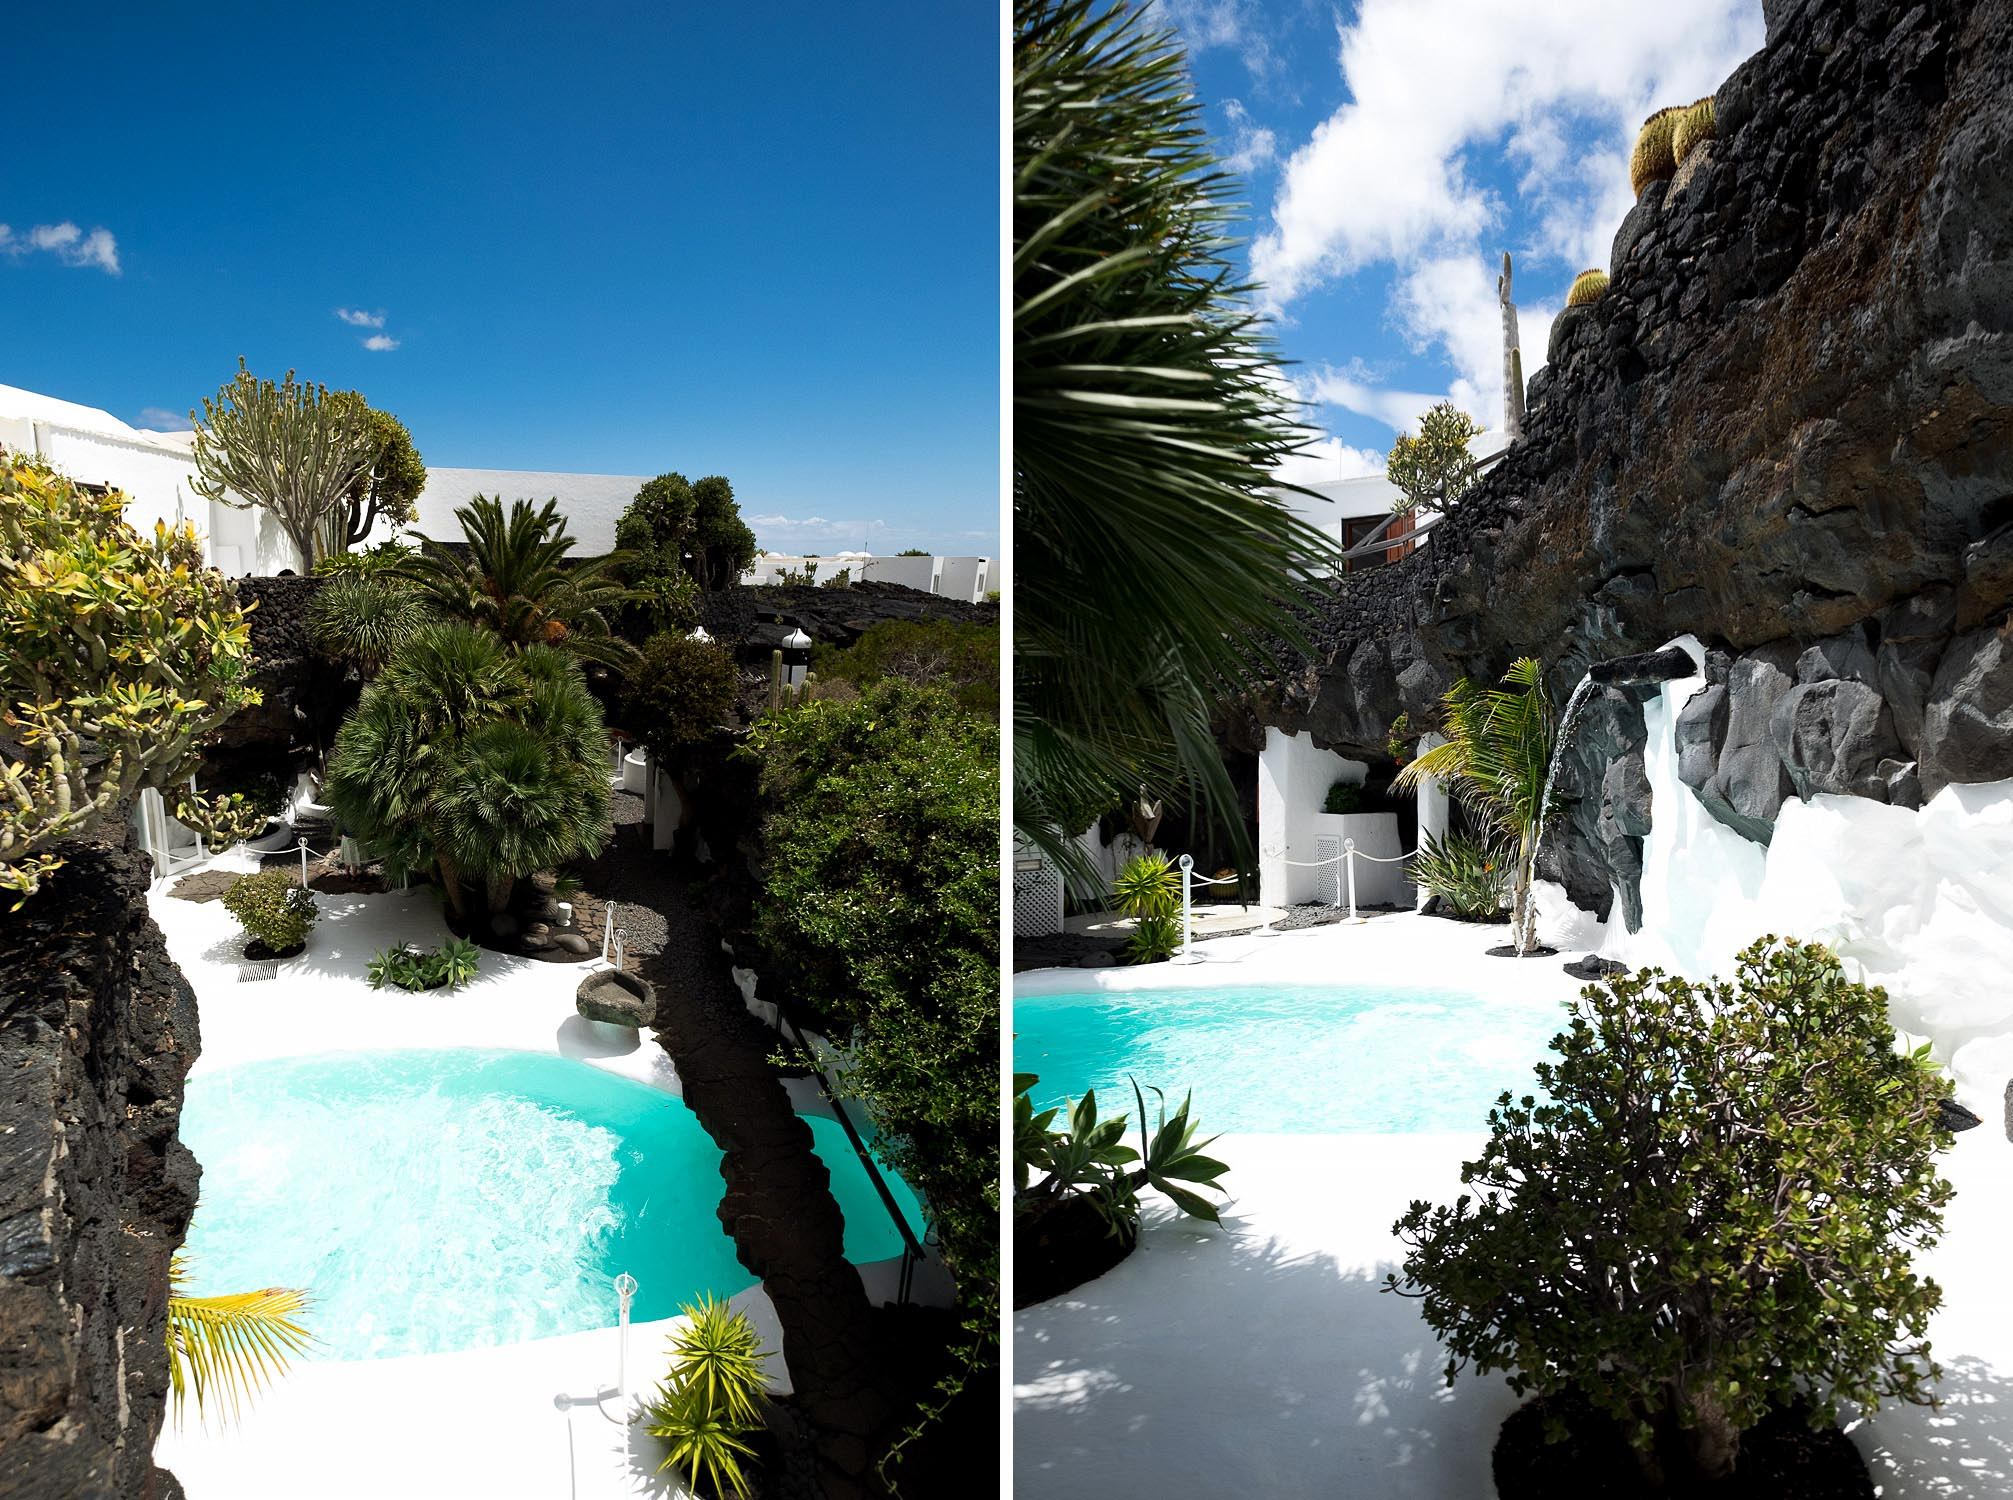 Cesar Manrique Foundation in Lanzarote